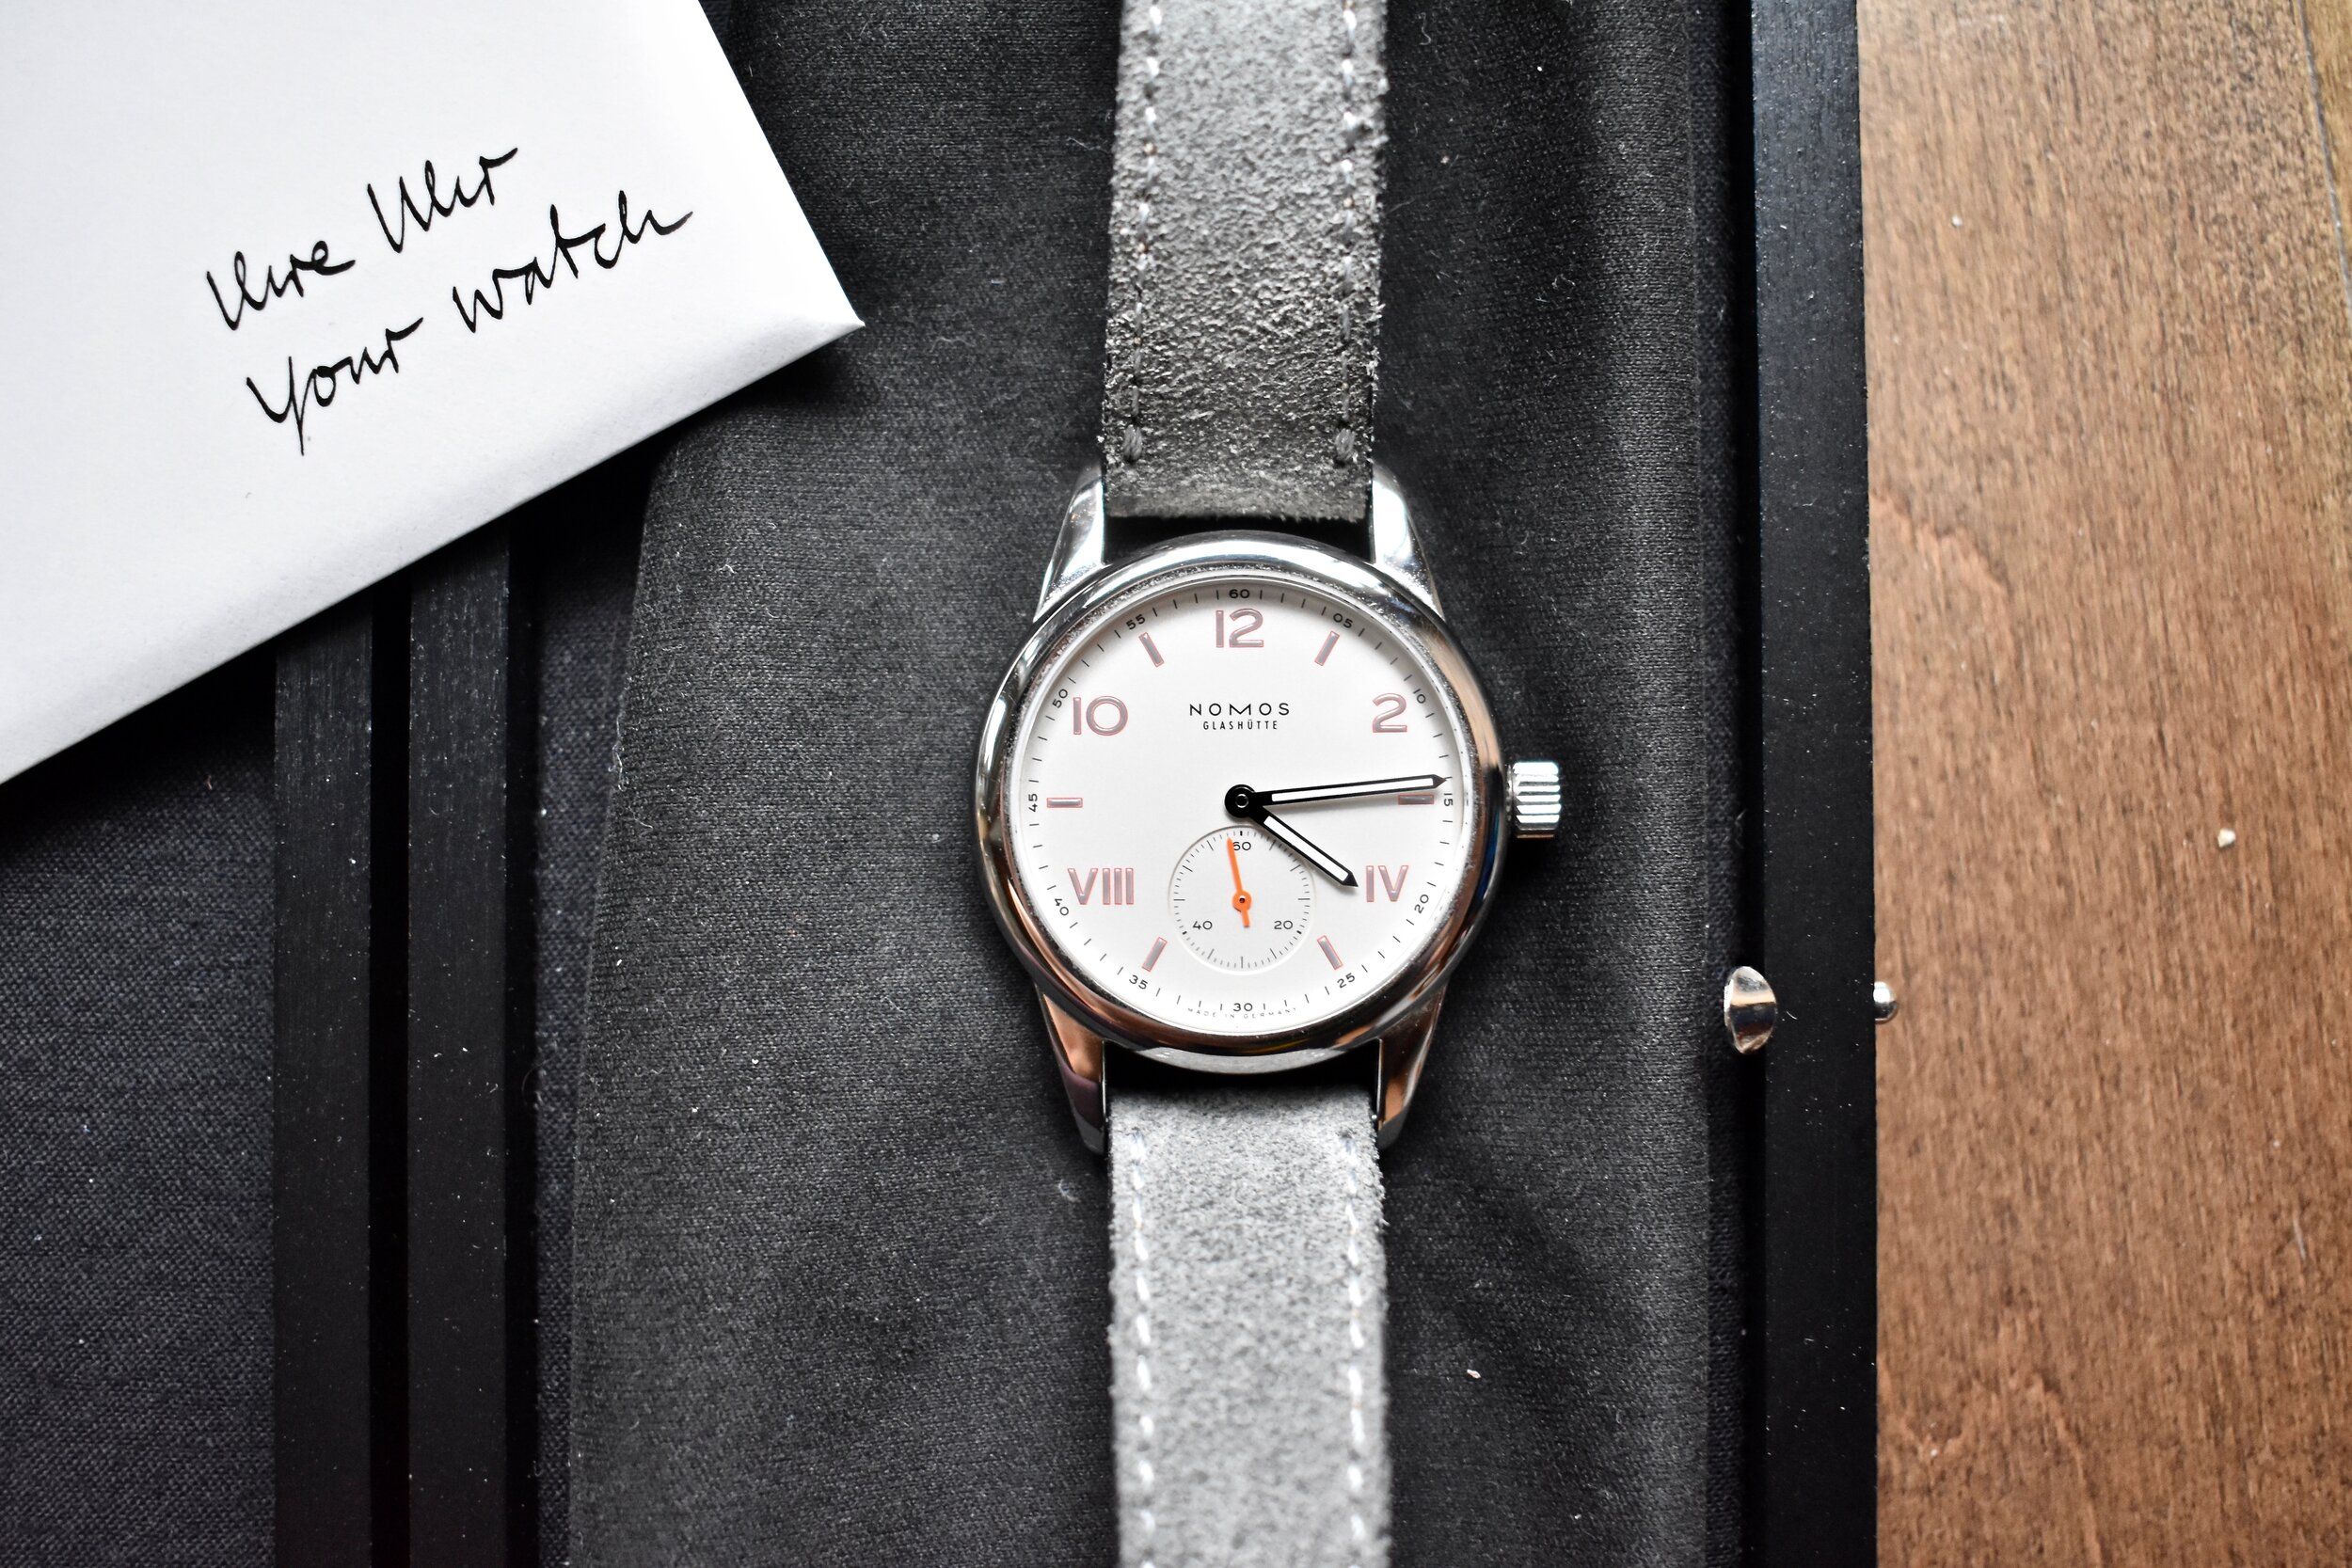 Watches delivered new from Chronext come complete with box, papers, and warranty card.